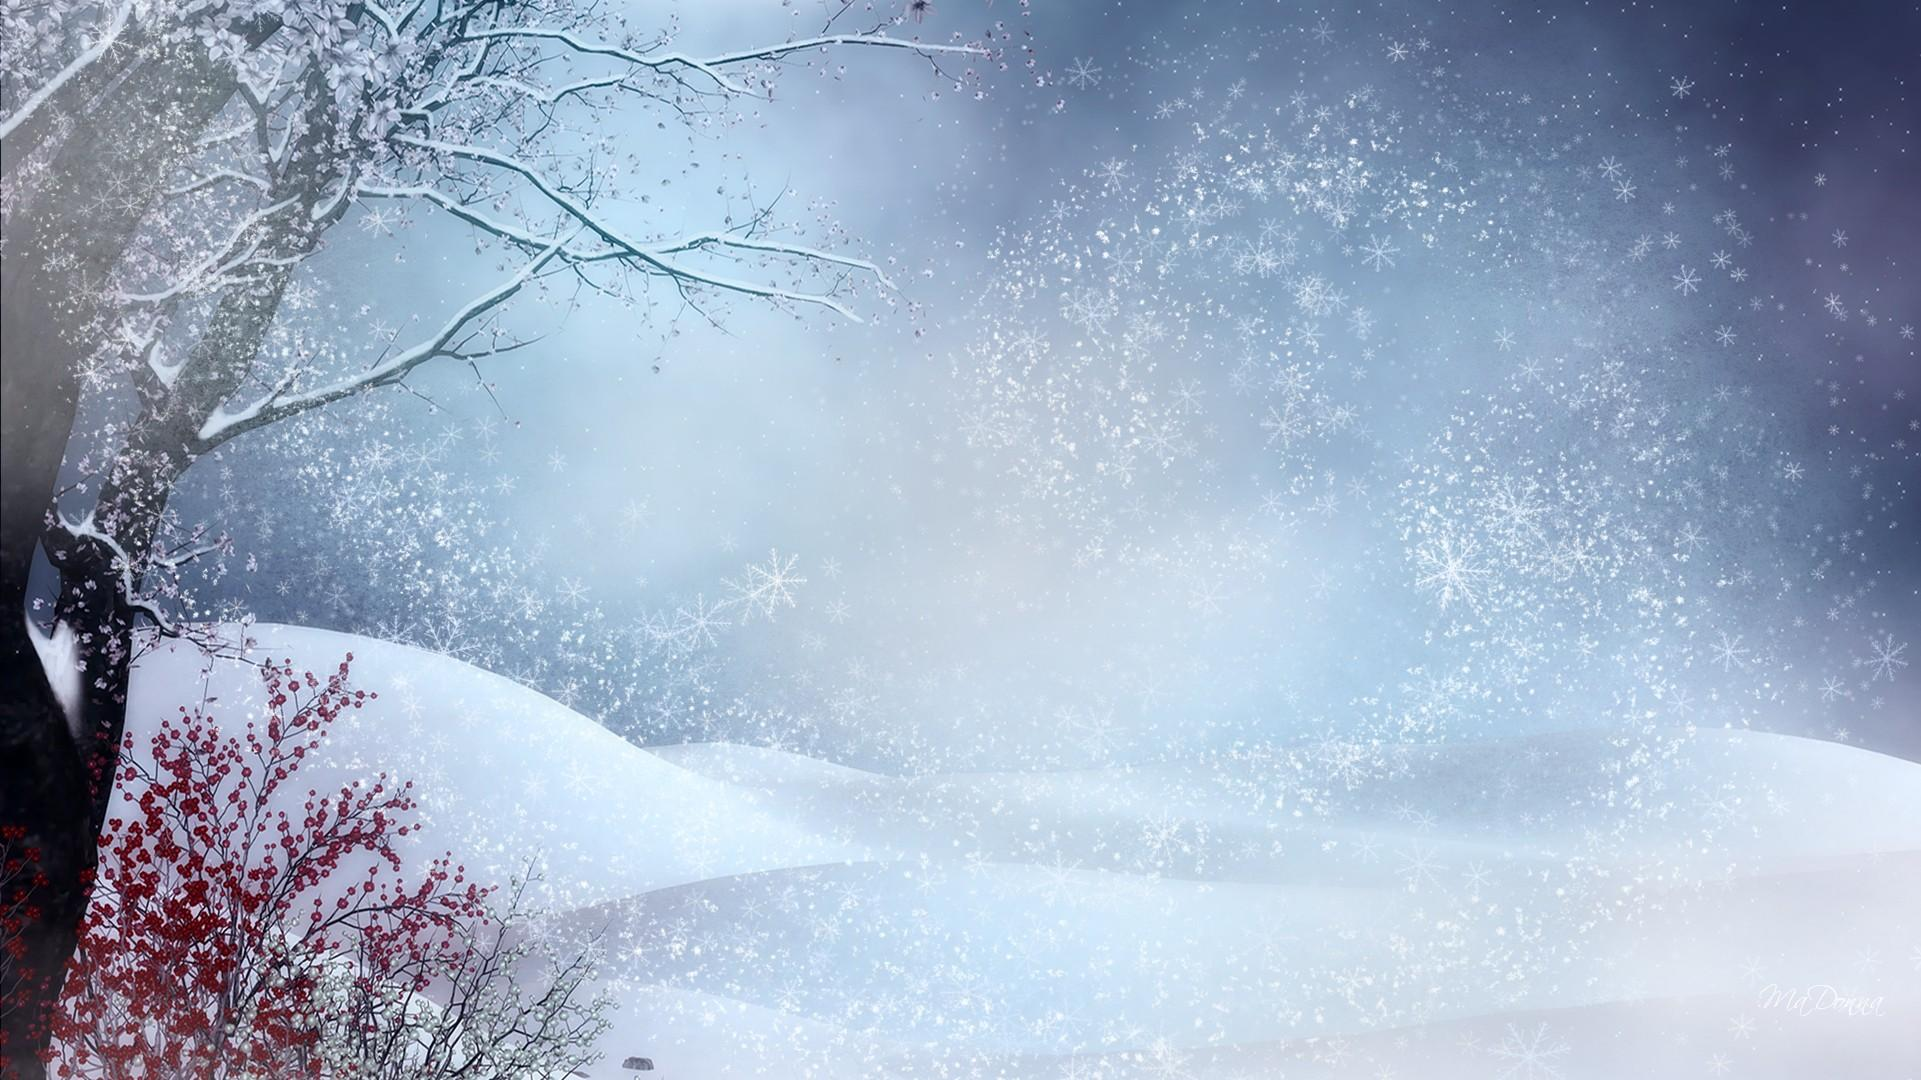 Winter Snow Wallpapers Wallpaper Cave